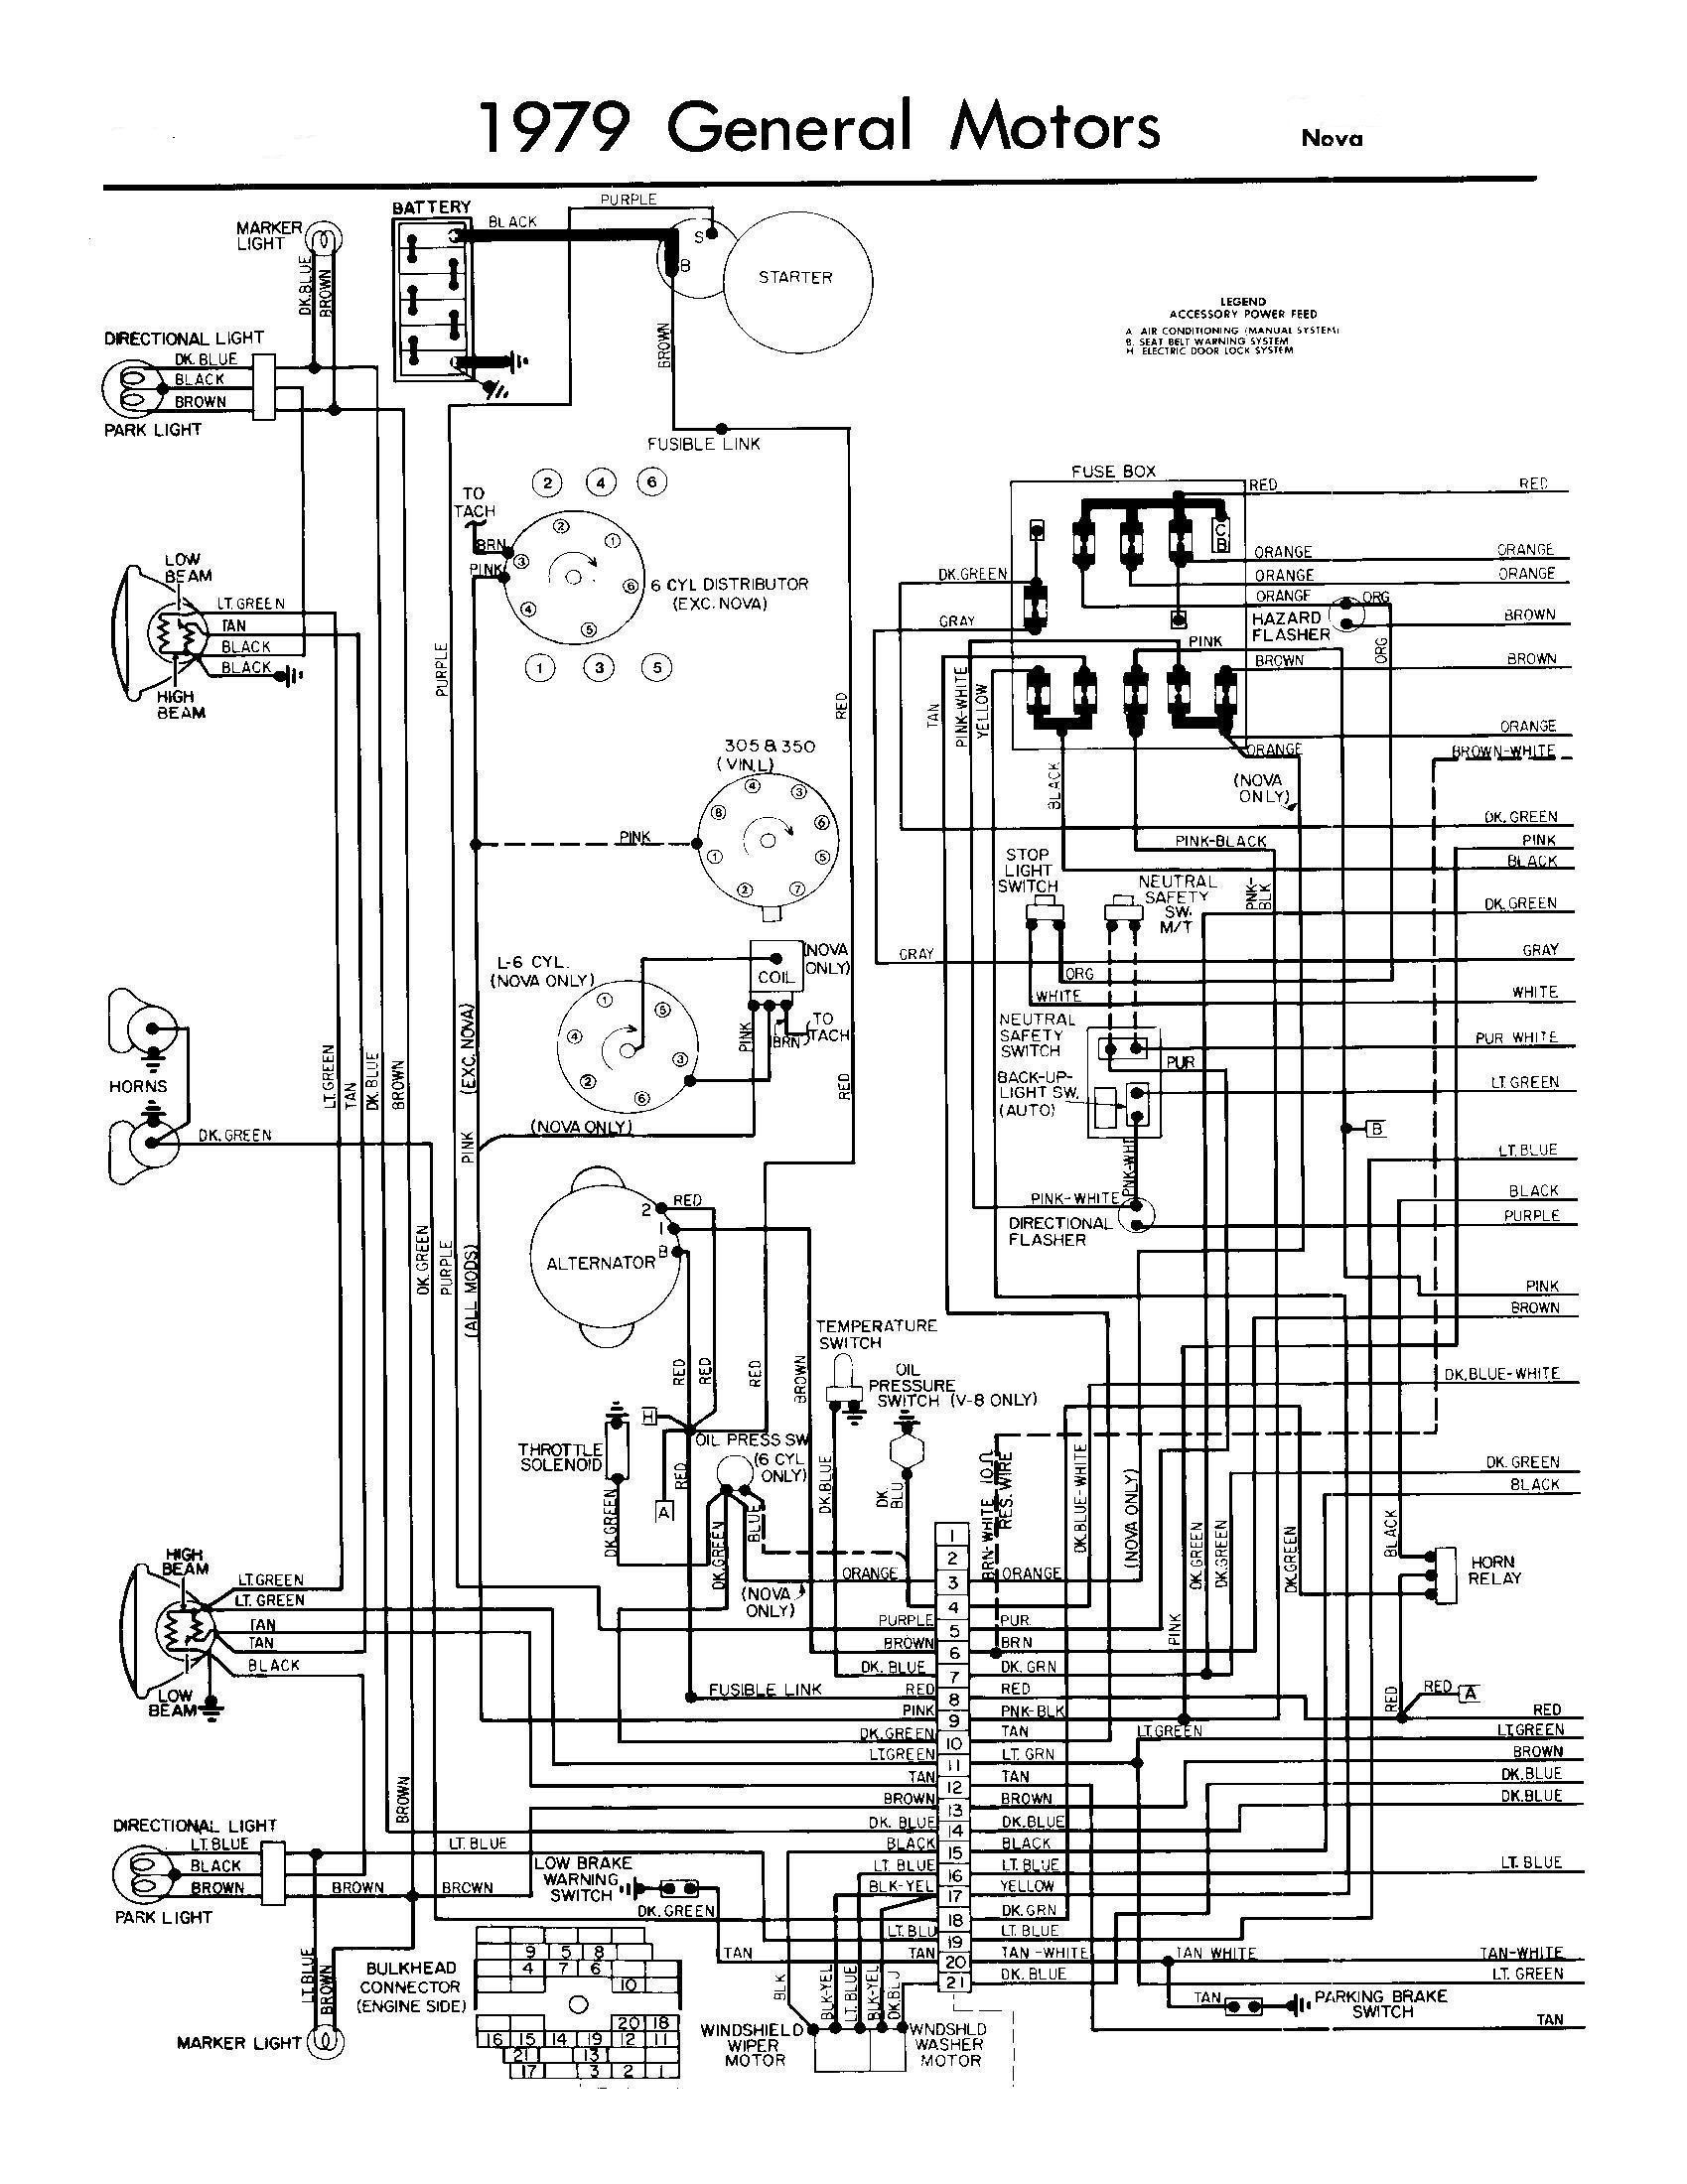 1979 camaro wiring harness wiring diagramspainless wiring harness diagram gm tpi wiring diagram data 1979 camaro torque converter 1979 camaro wiring harness